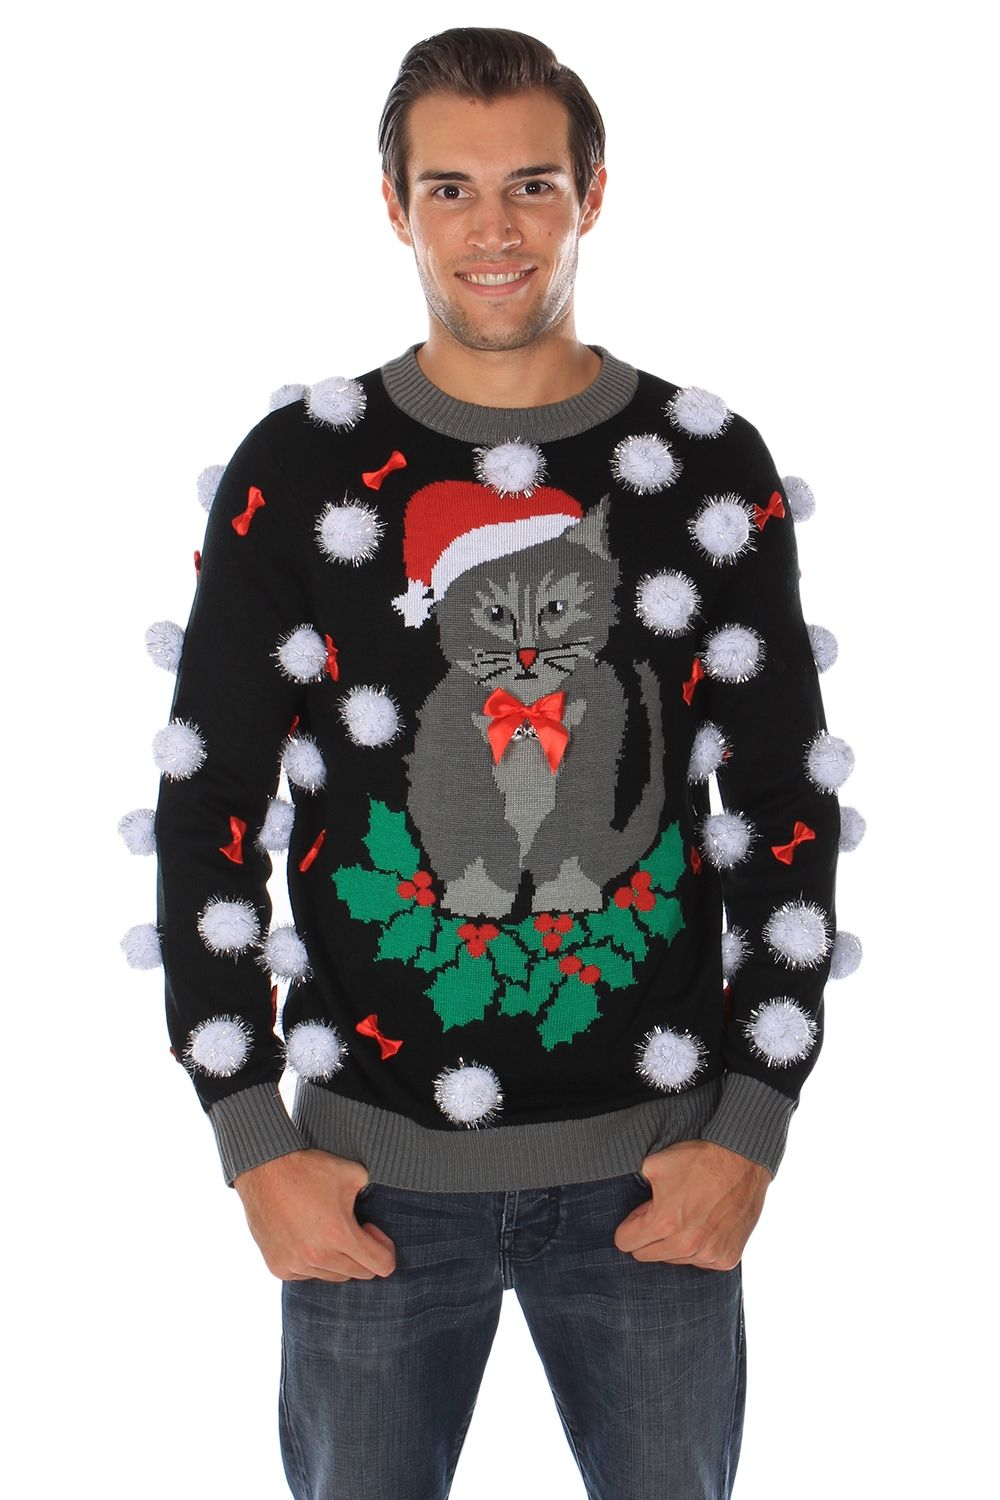 Pin on Ugly Sweater Party